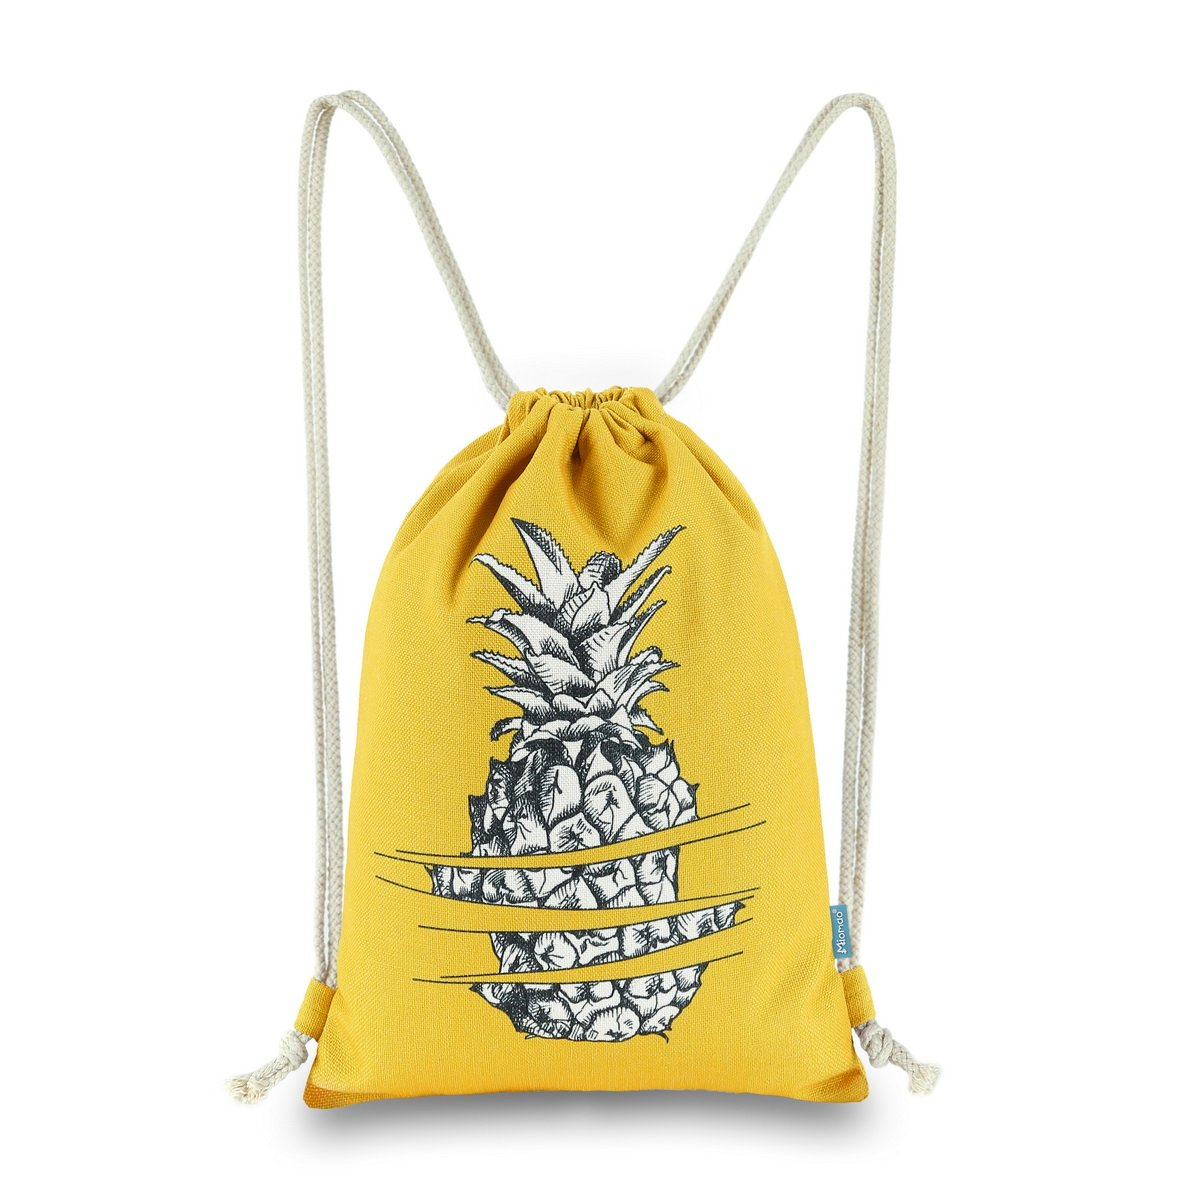 Miomao Drawstring Backpack Gym Sackpack Pineapple Style String Bags Canvas Sinch Sack Sport String Bag Cinch Sack For Man & Women,13'' X 18'', Yellow